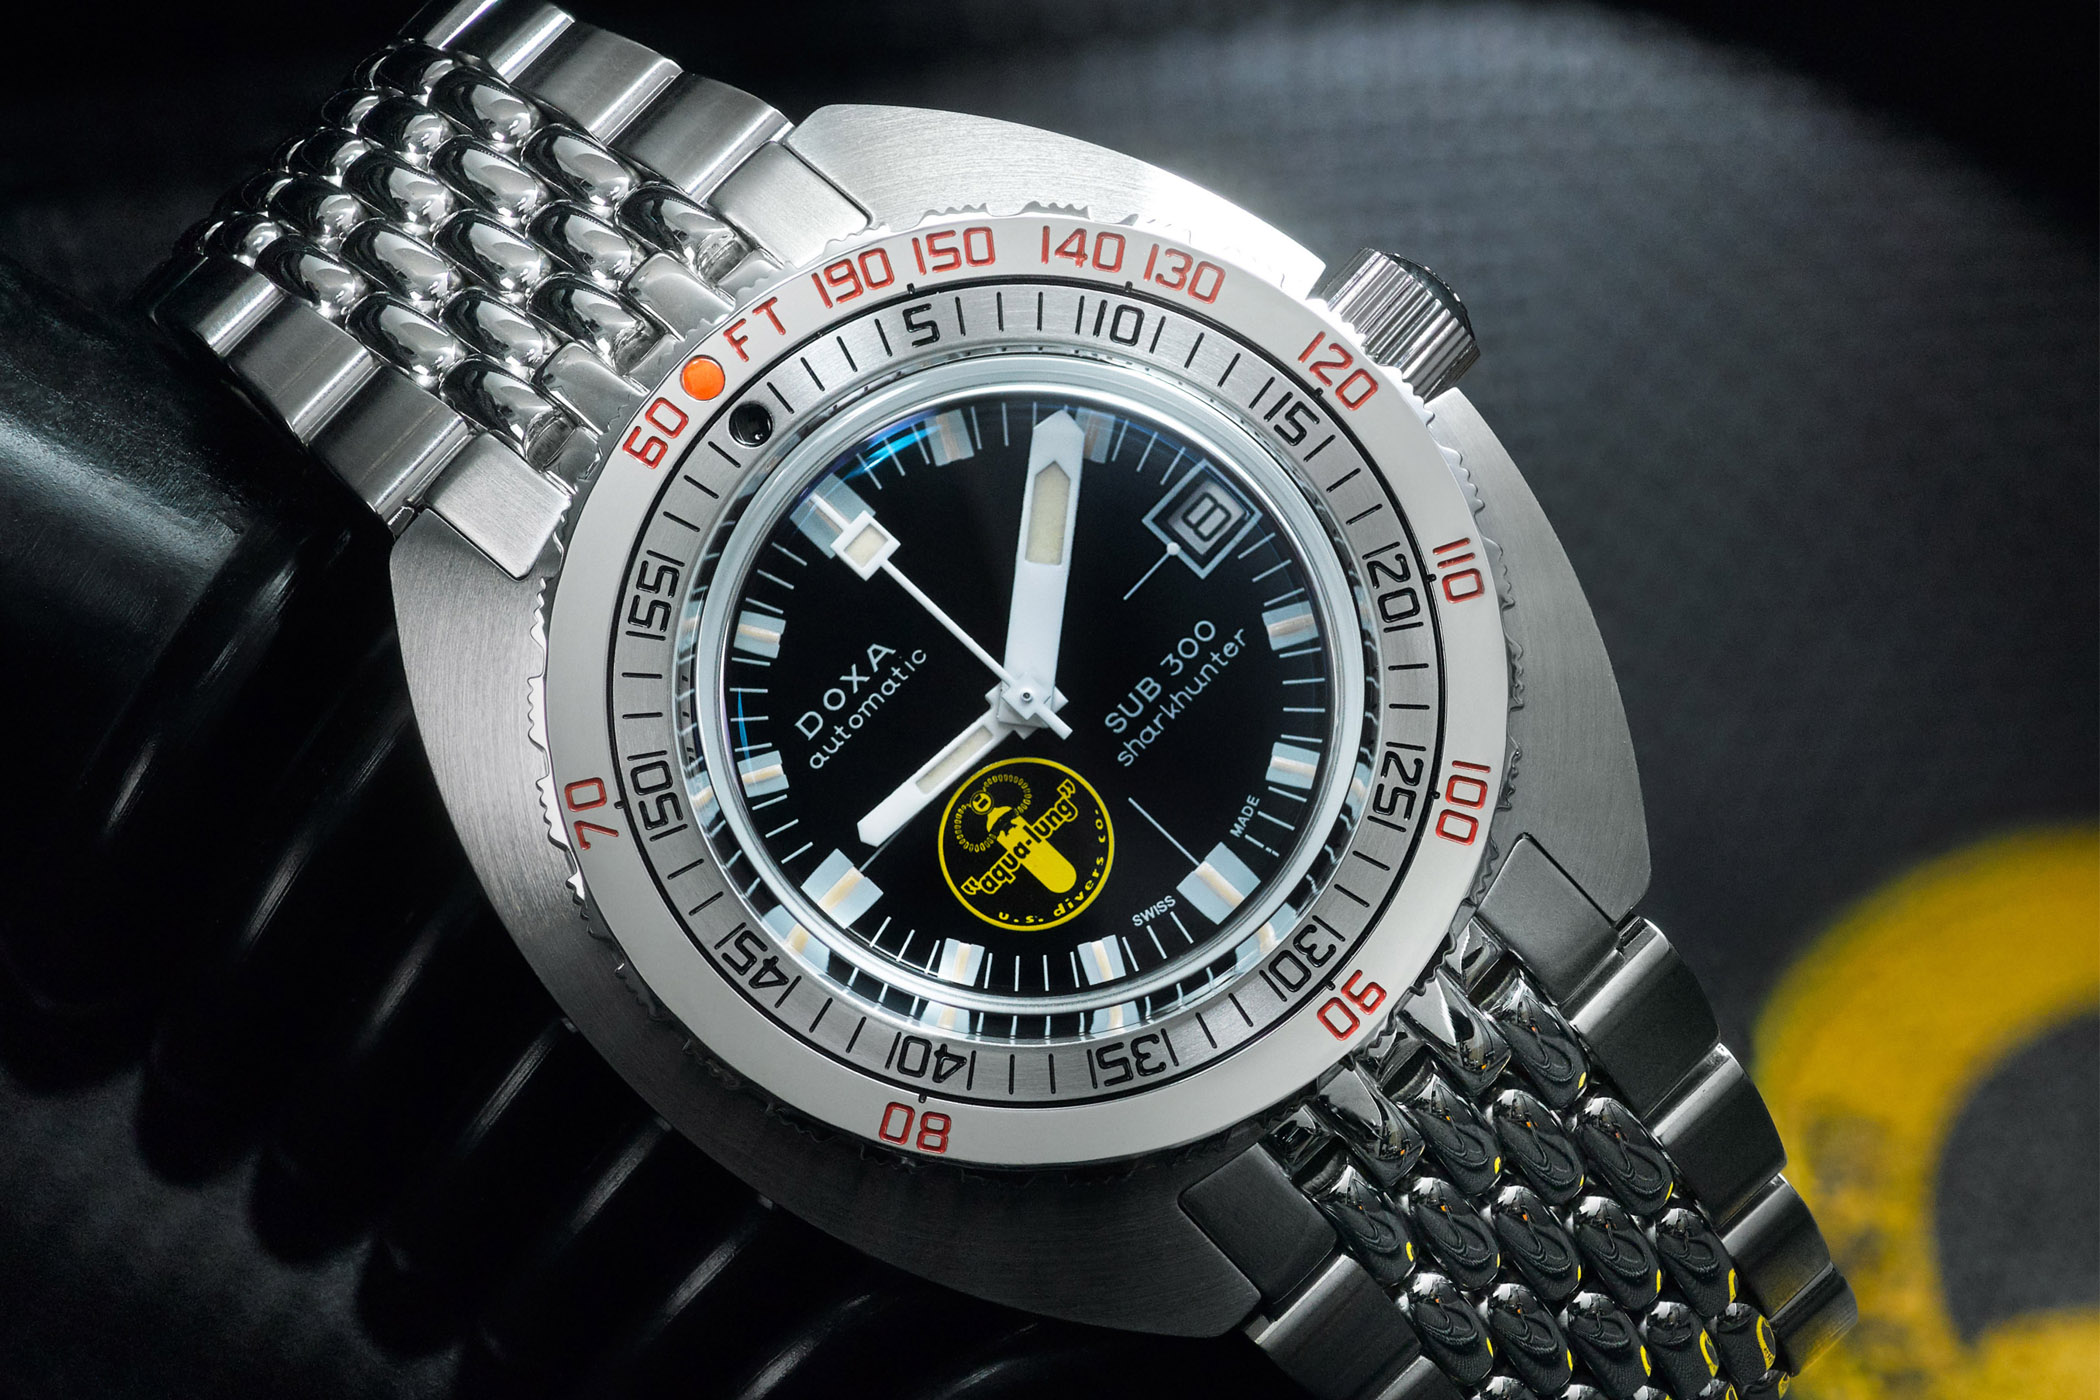 Doxa SUB300 Sharkhunter Black Lung